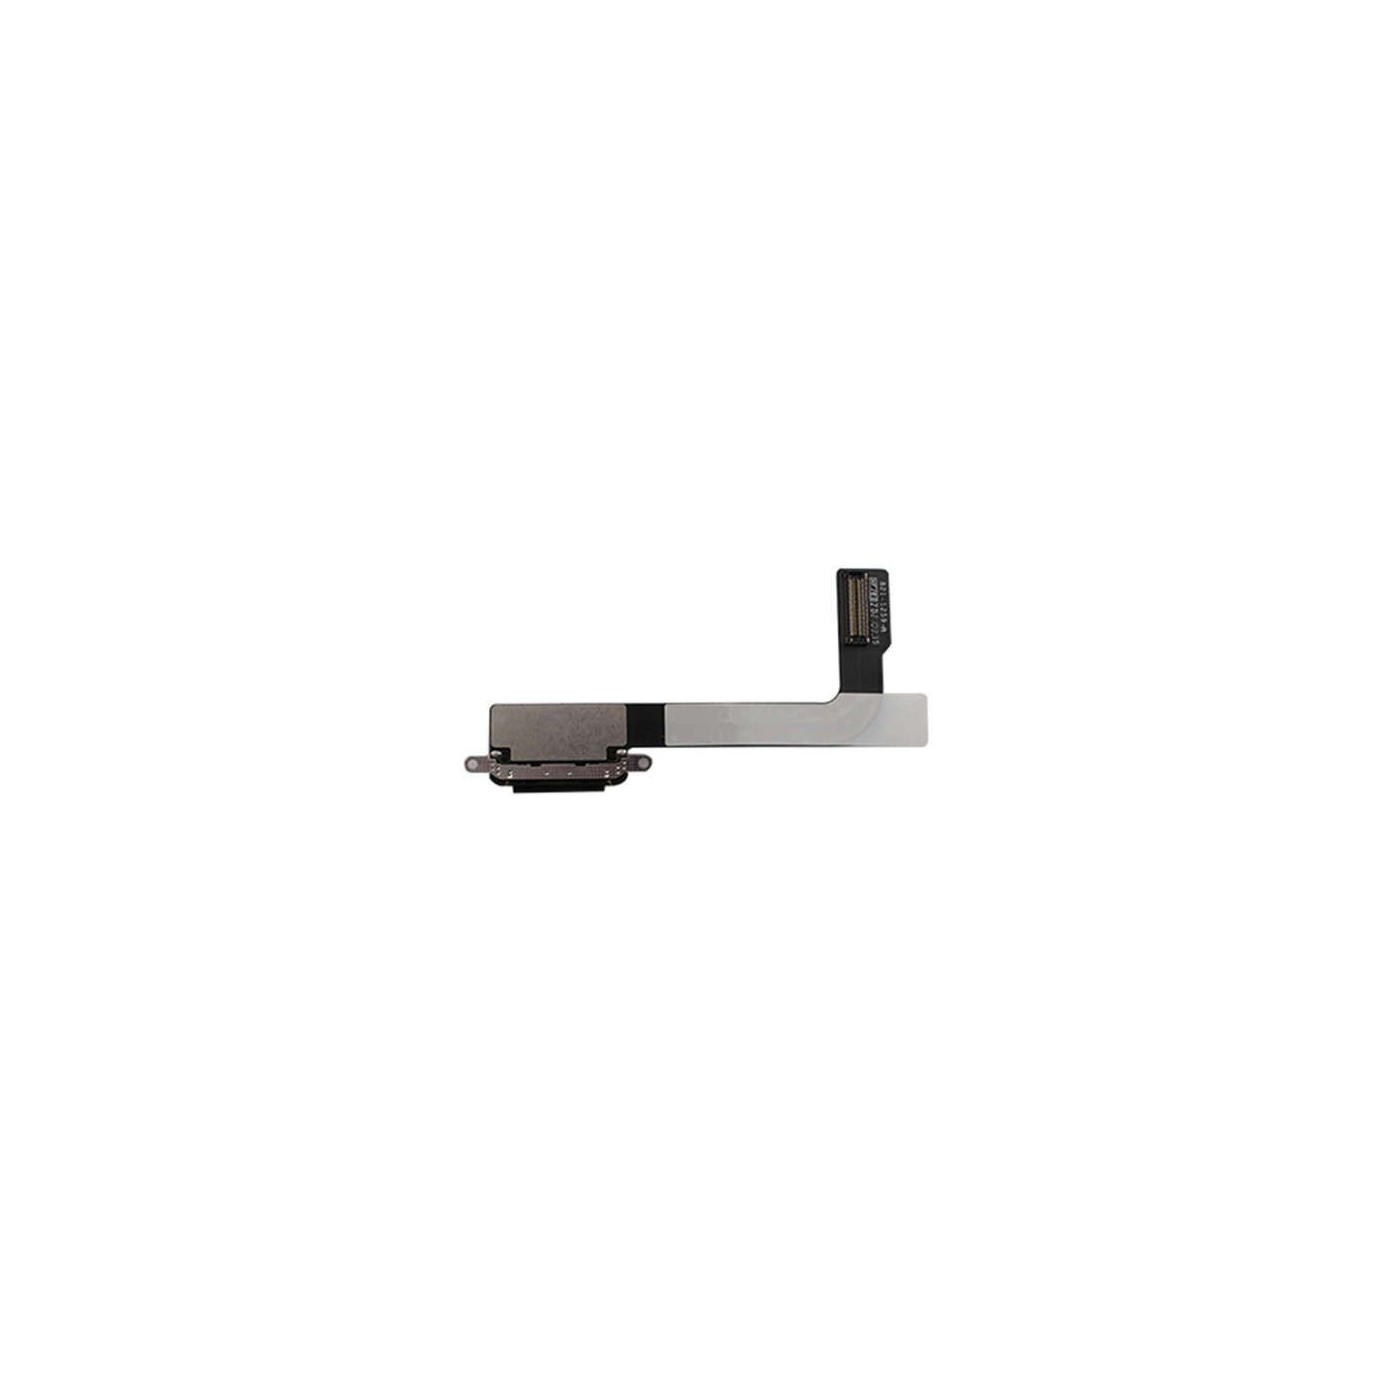 Connecteur de charge pour Apple ipad 3 Flex remplacement du port de charge plat